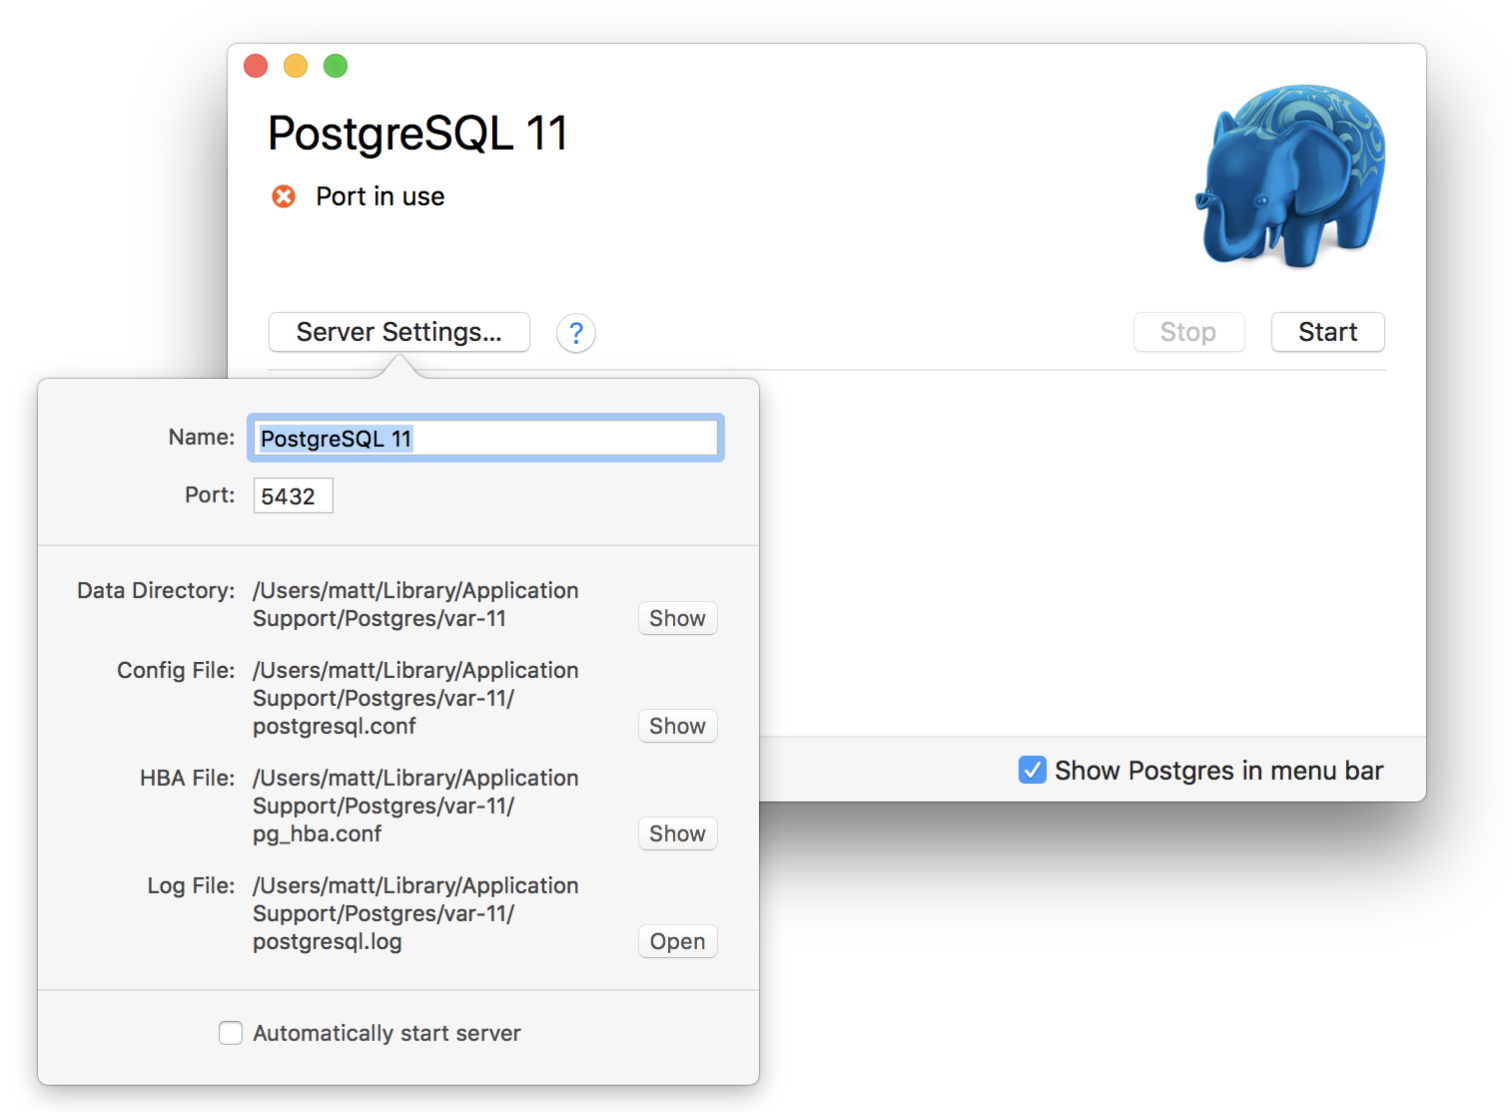 Shows how to edit settings in the postgres app